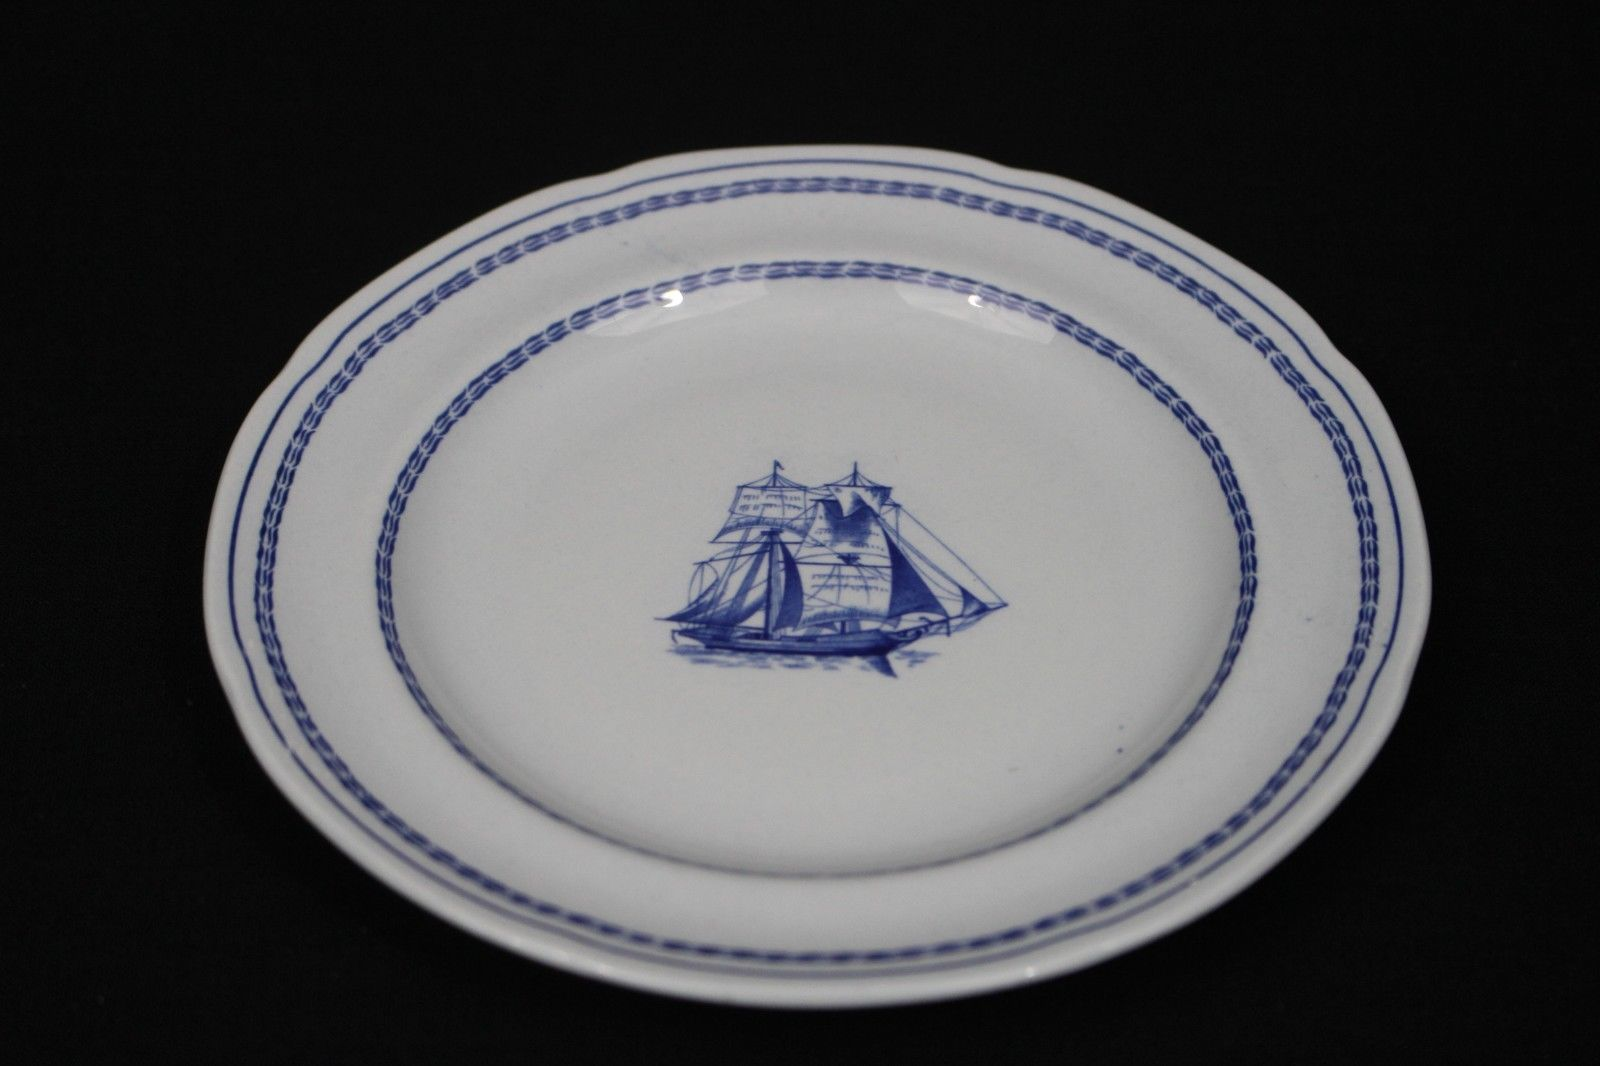 Spode Trade Winds Blue Bread and Butter Plate W146 excellent condition & Spode Trade Winds Blue Bread and Butter and 50 similar items